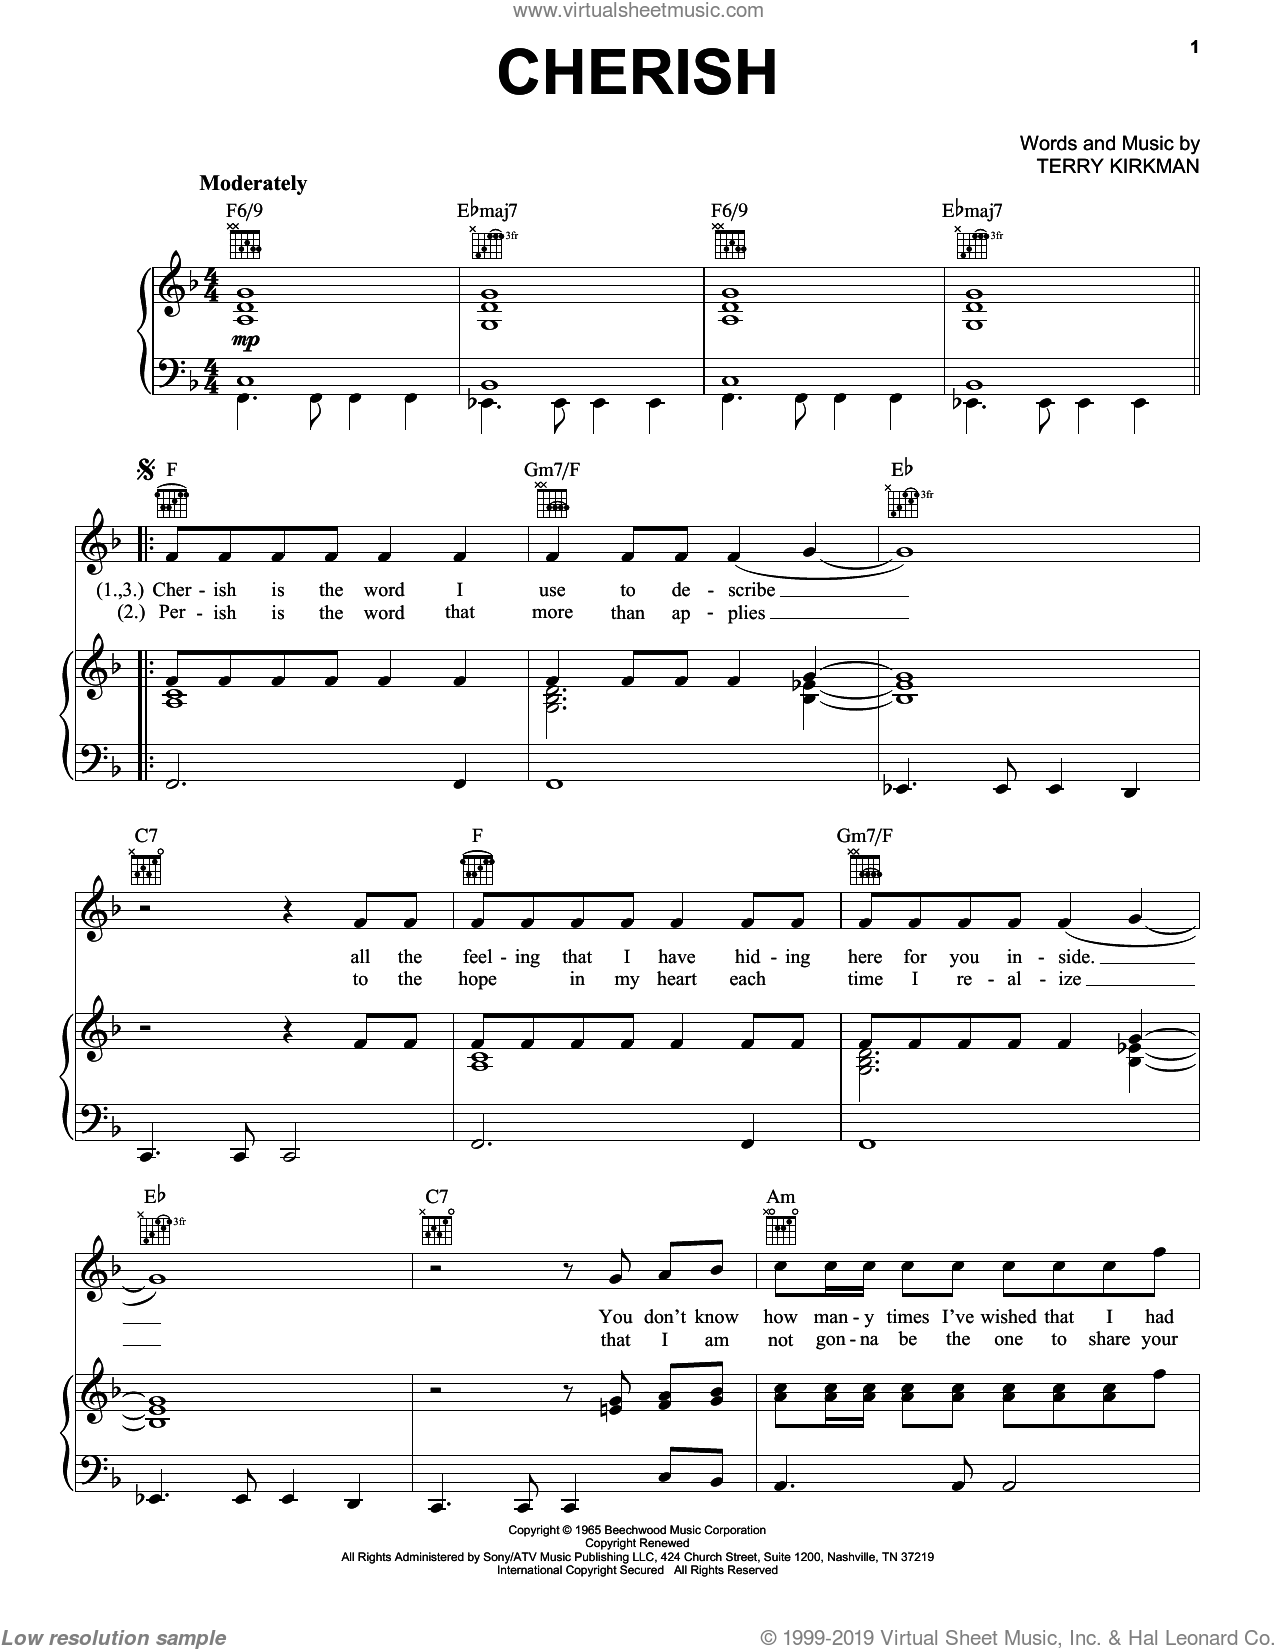 Cherish sheet music for voice, piano or guitar by The Association, David Cassidy and Terry Kirkman, wedding score, intermediate skill level